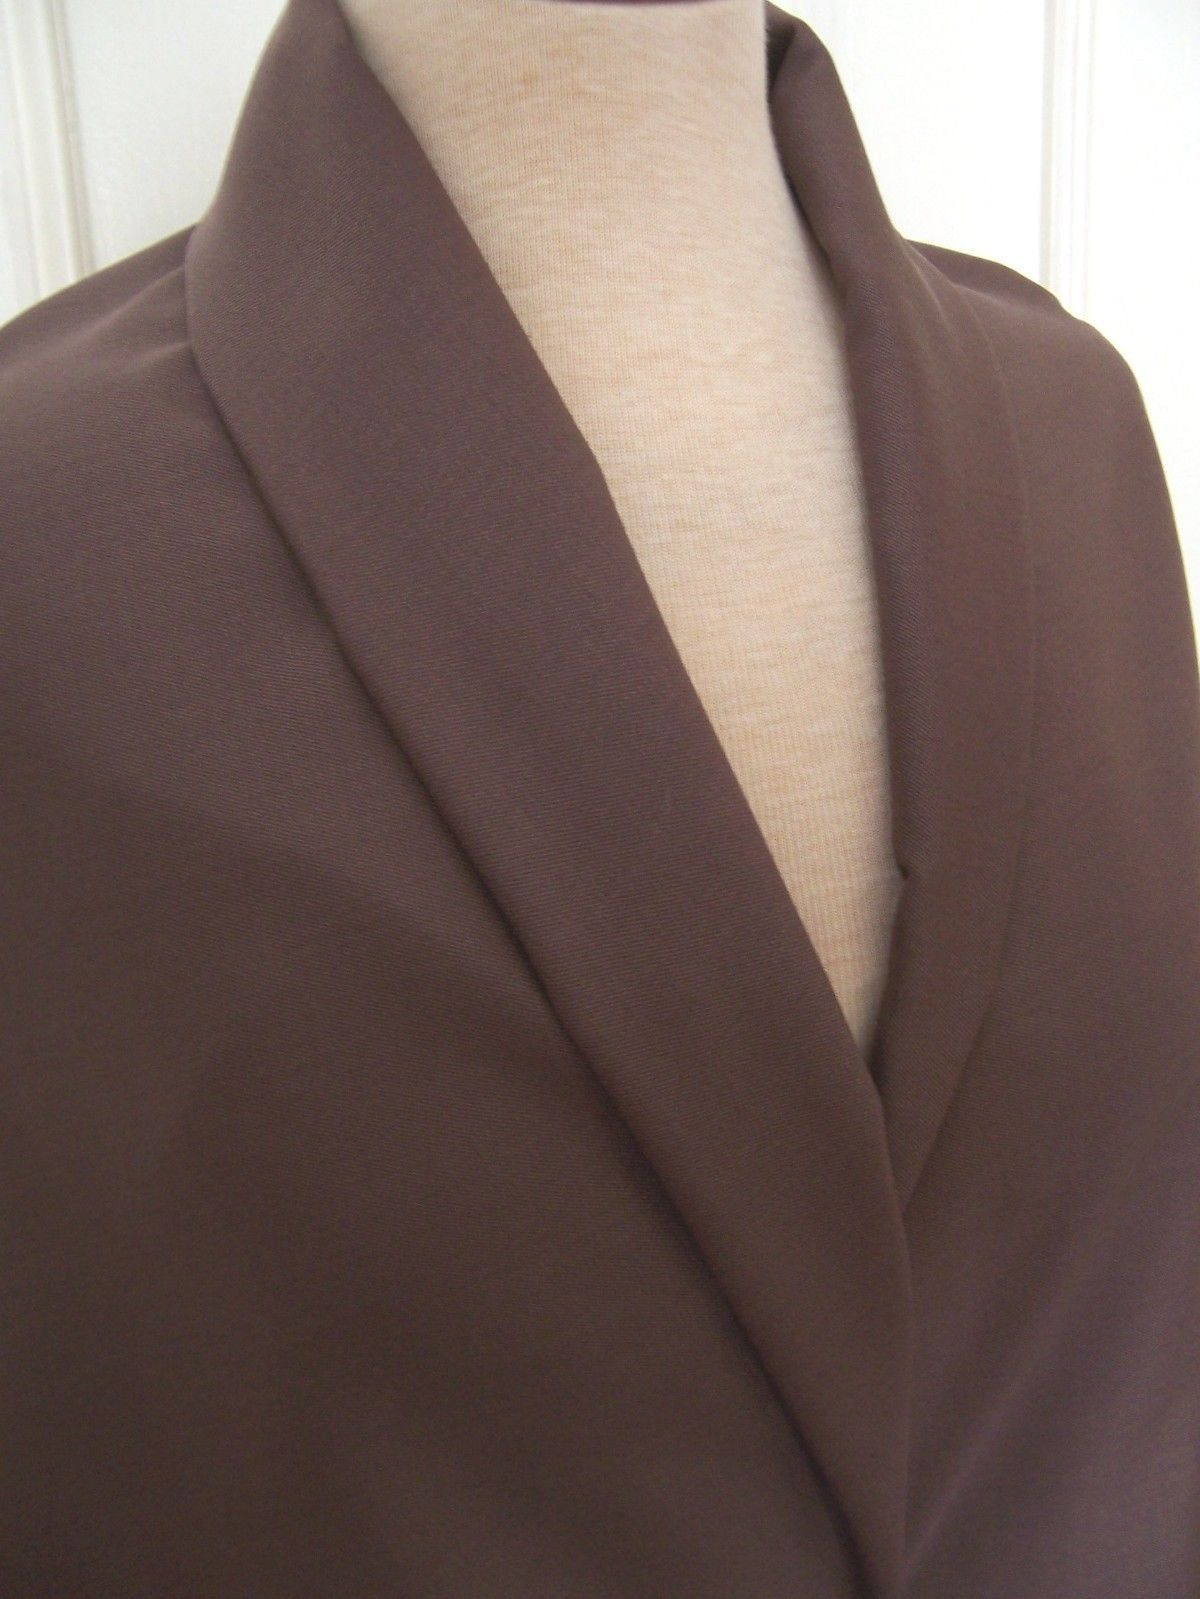 Primary image for 4yd LANIFICIO FERRO BIELLA WARM BROWN SUPER 180 CASHMERE WOOL GABARDINE FABRIC